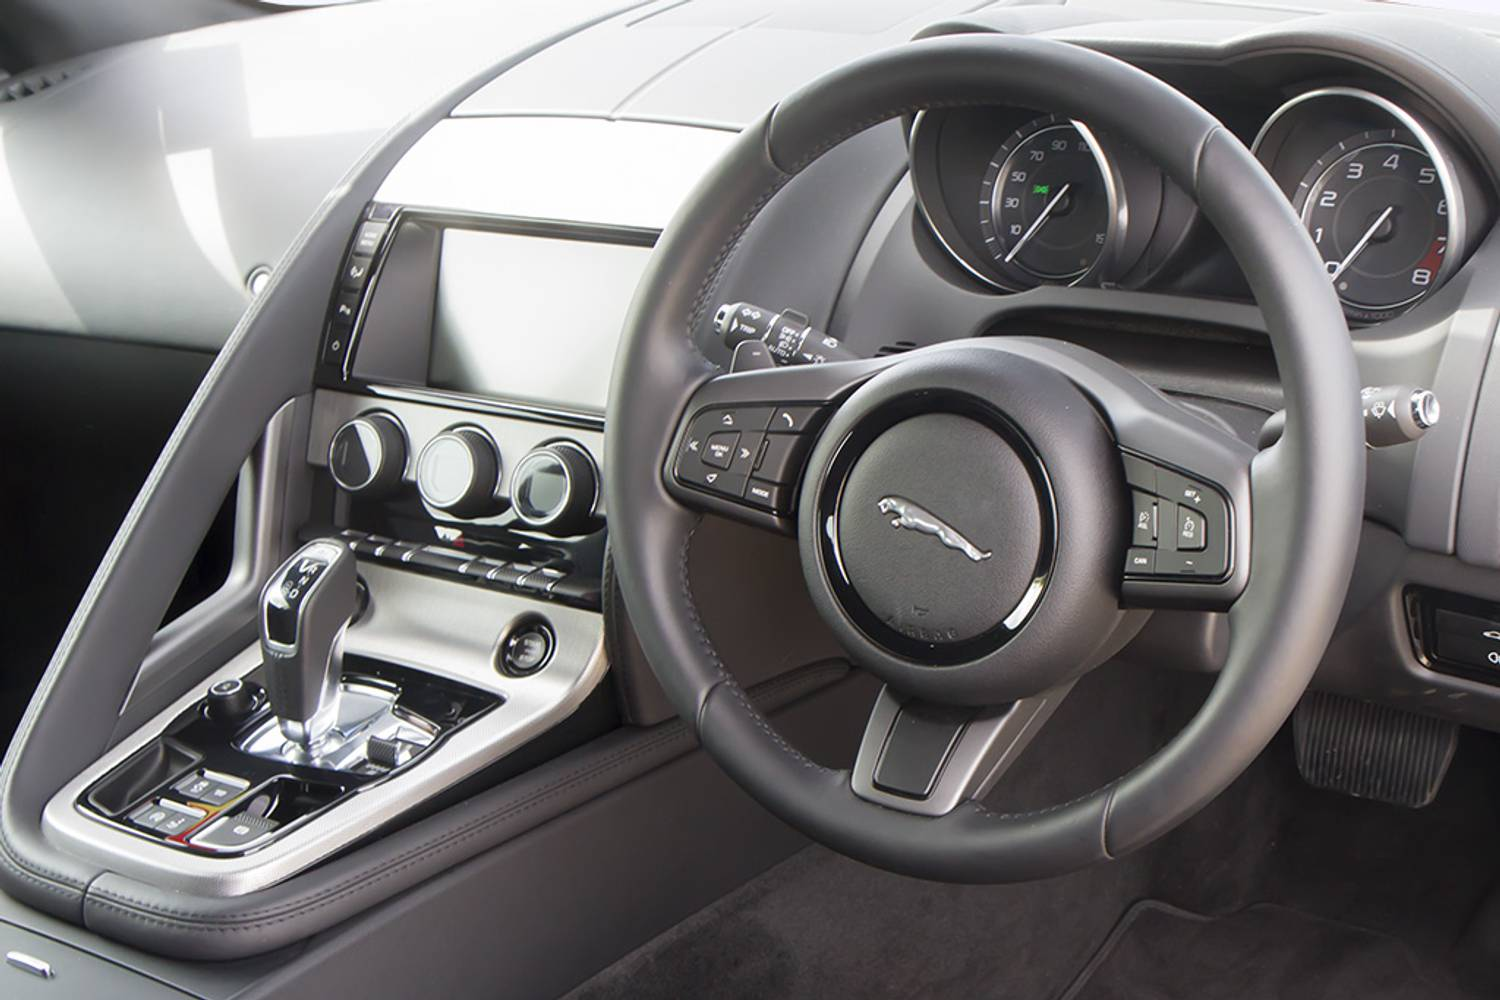 New Jaguar F Type Coupe 3 0 Supercharged V6 S 2 Door Auto 2014 For Sale